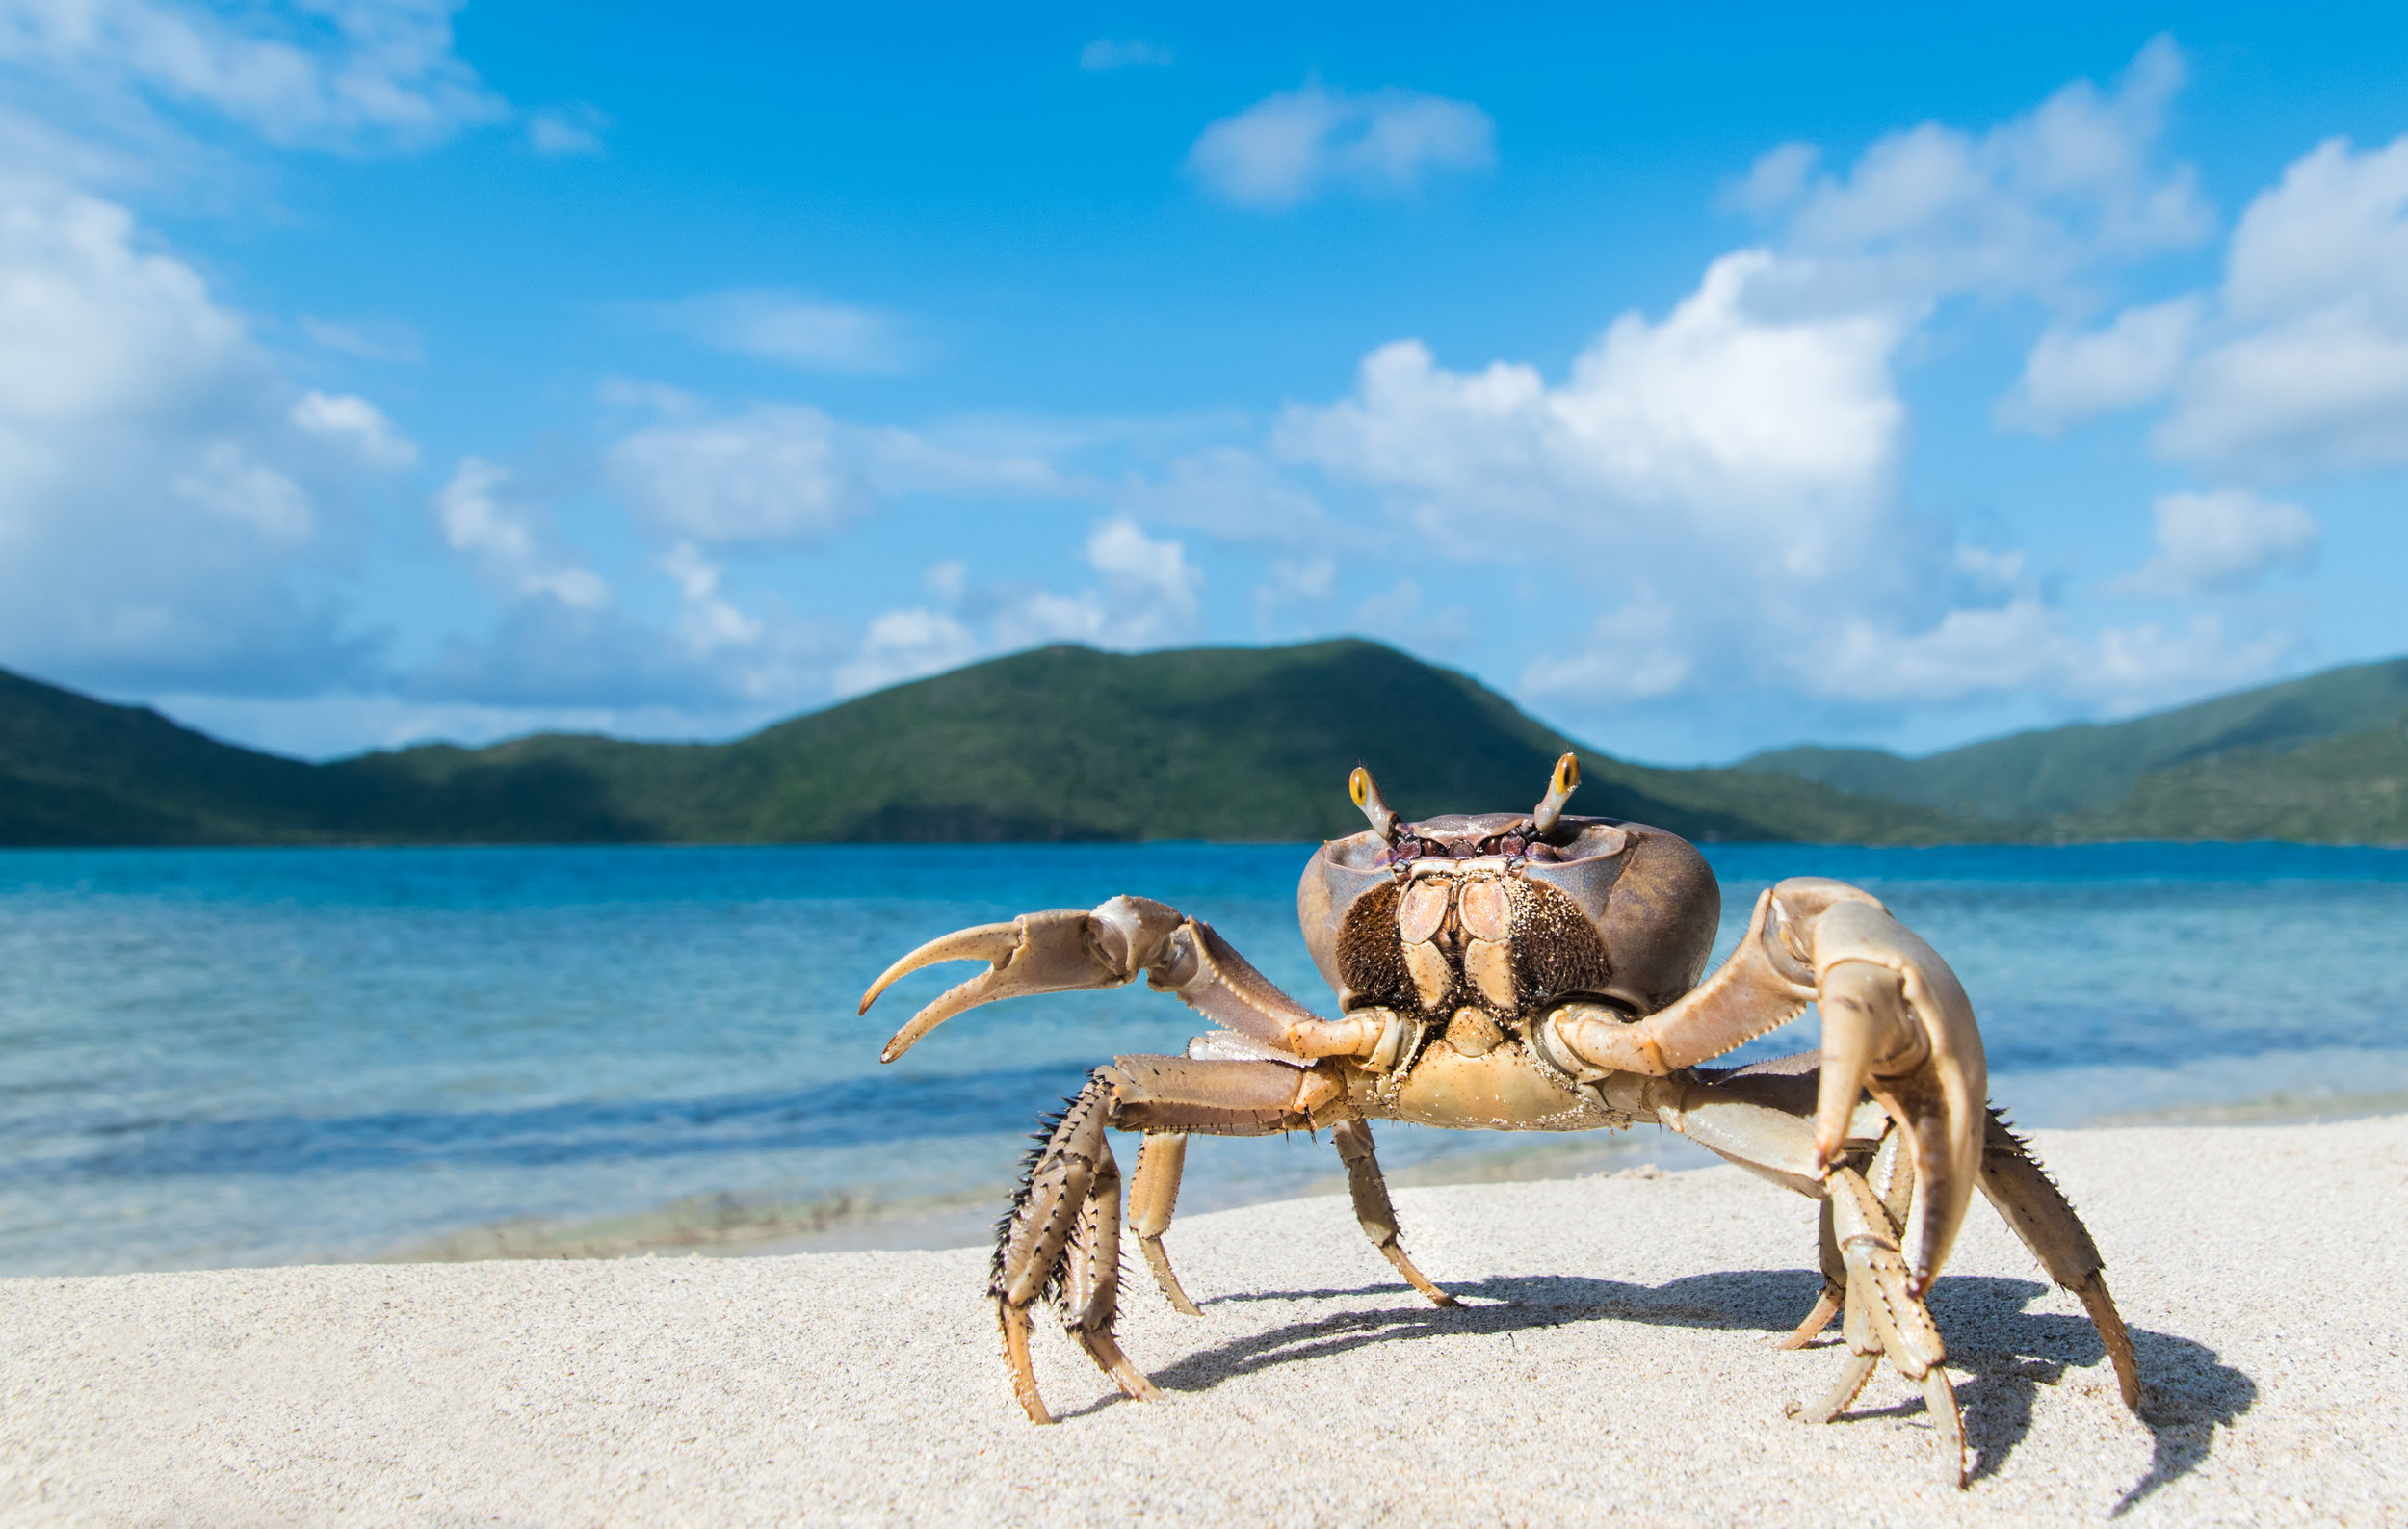 """ Land Crab ,"" British Virgin Islands"